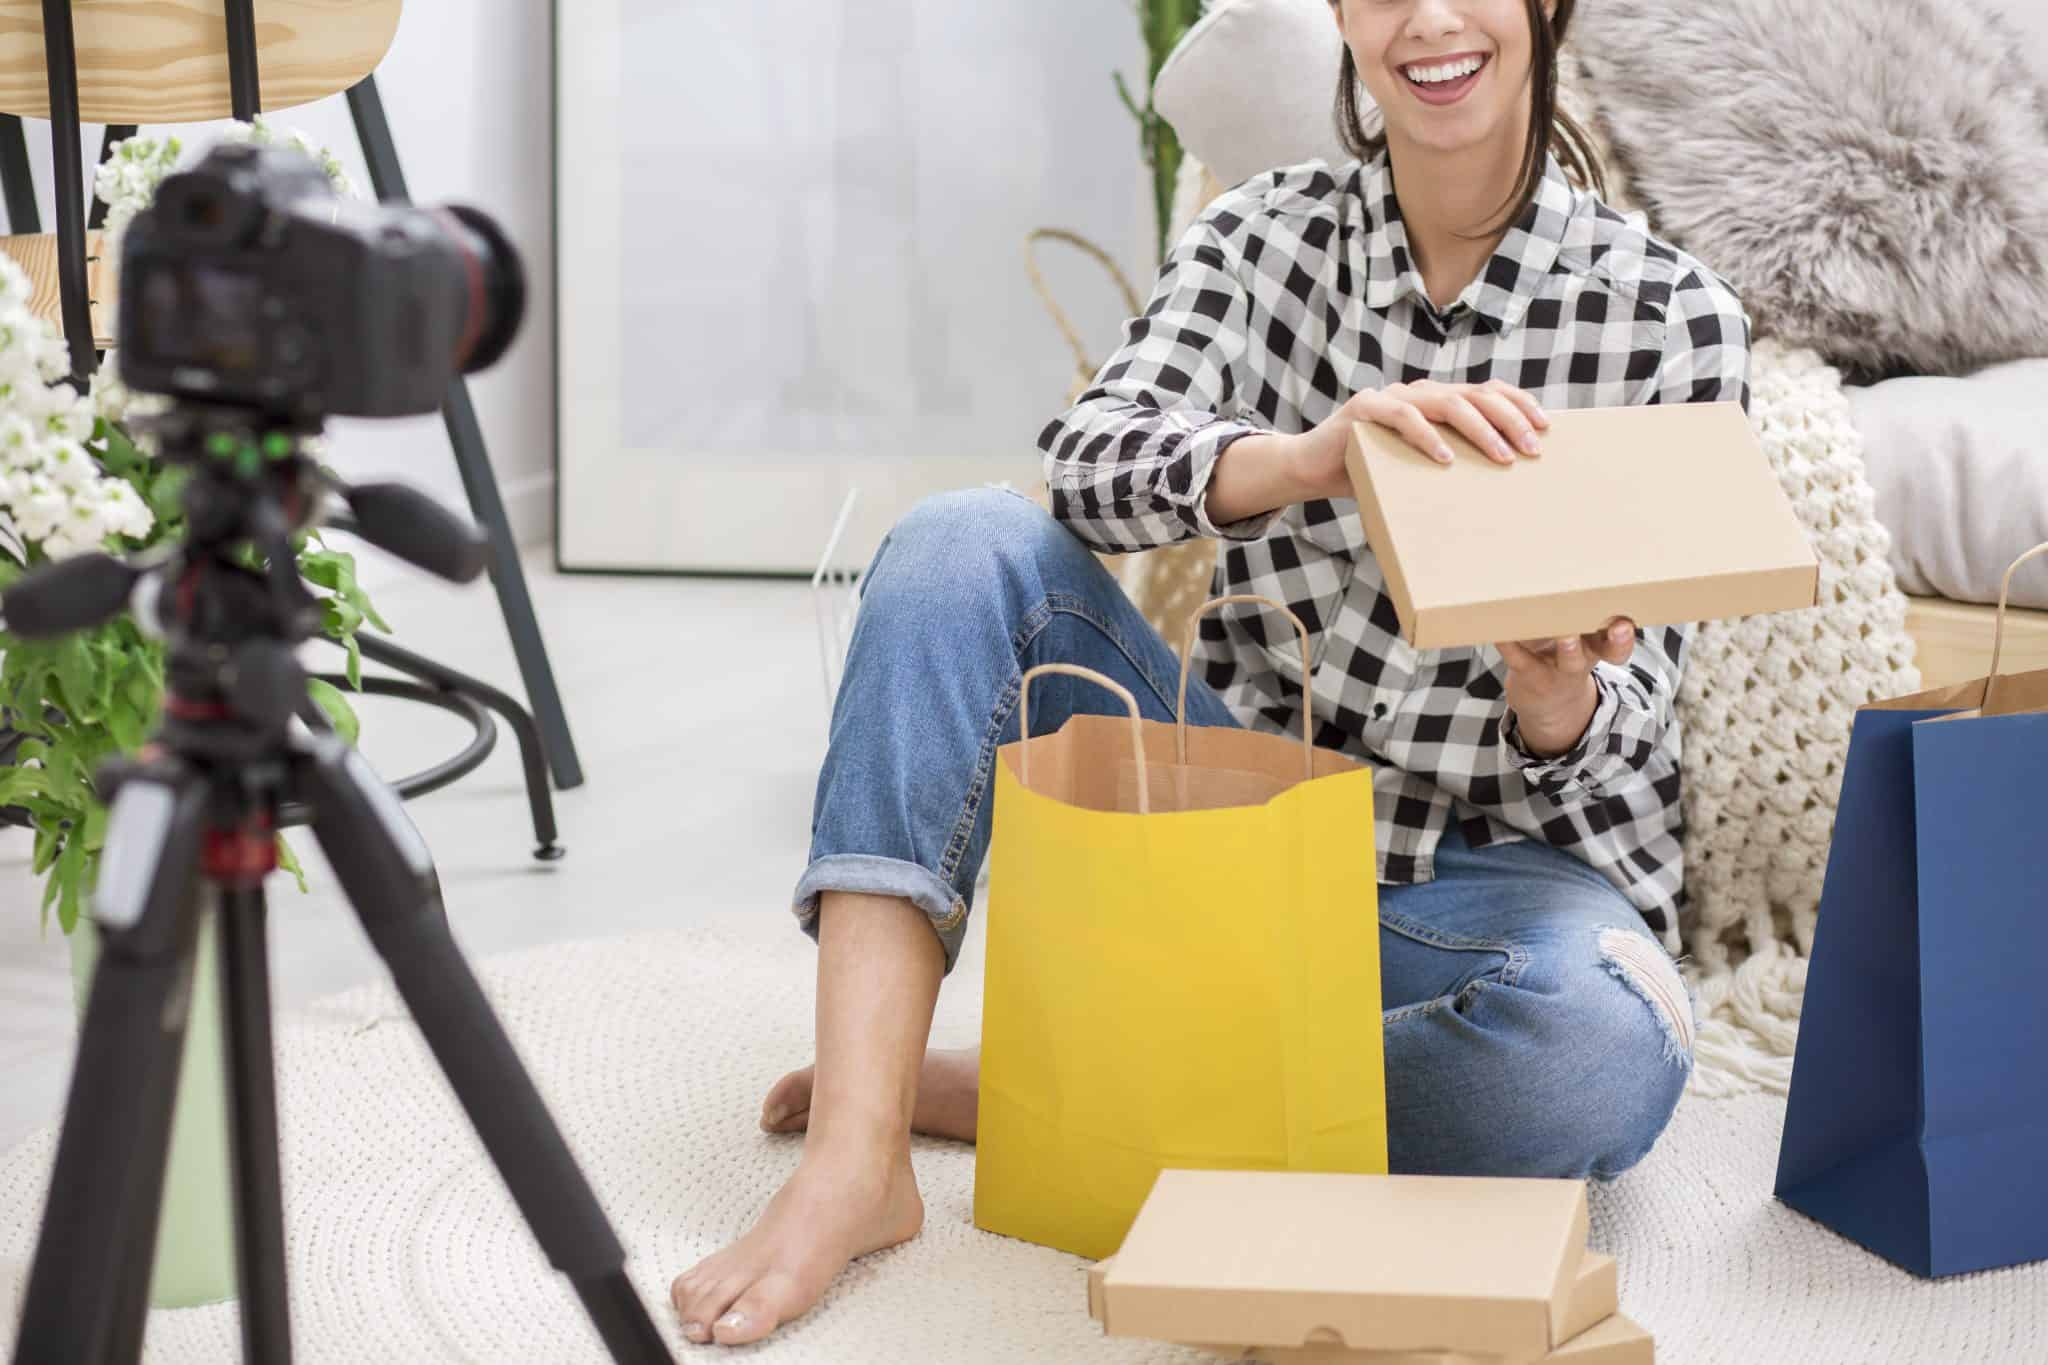 How to Make eCommerce Customers Fall in Love with Your Brand